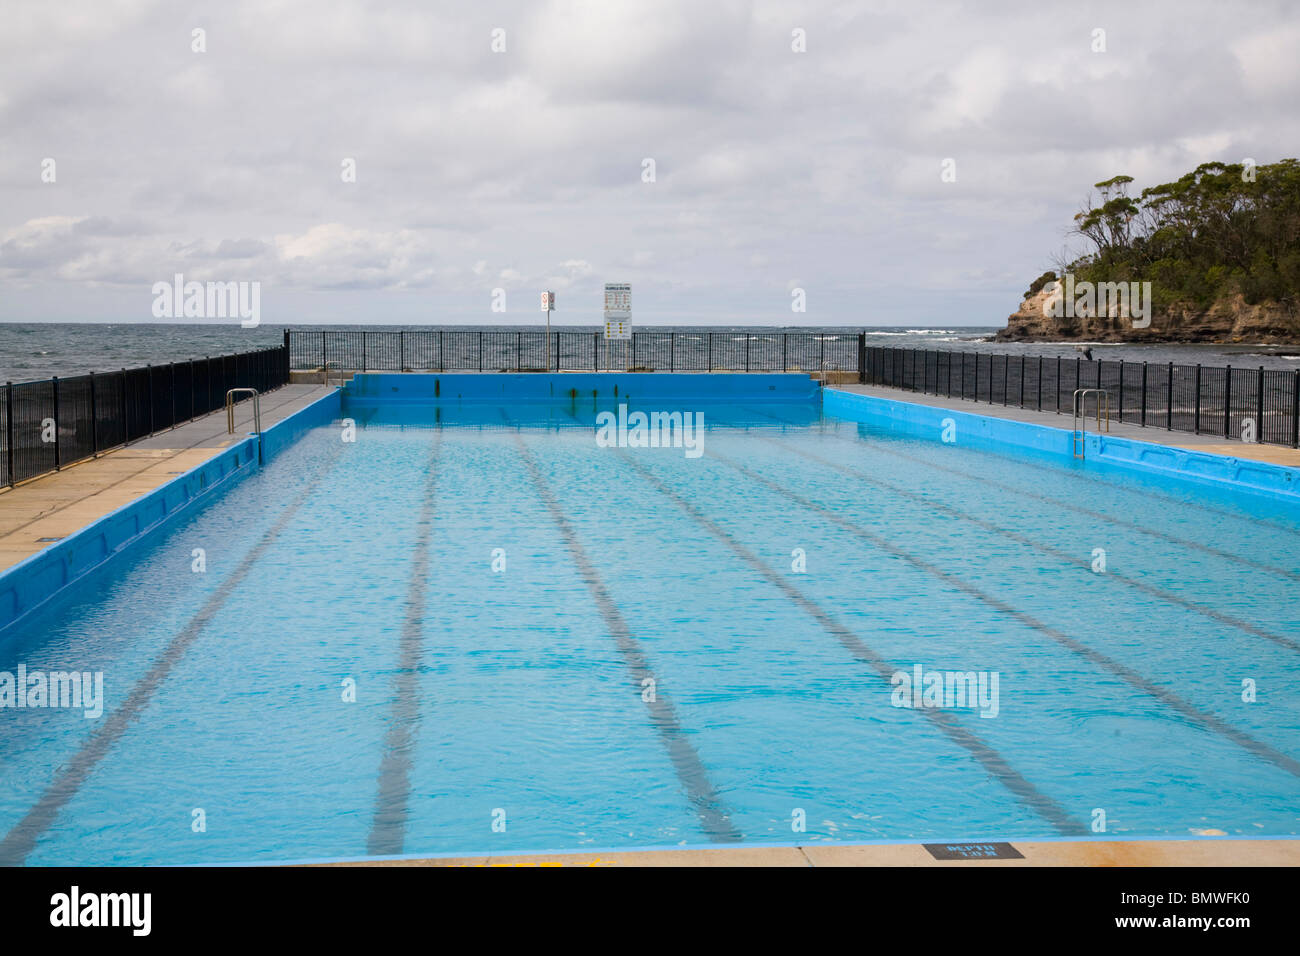 ulladulla outside open air swimming sea pool, new south wales,australia - Stock Image